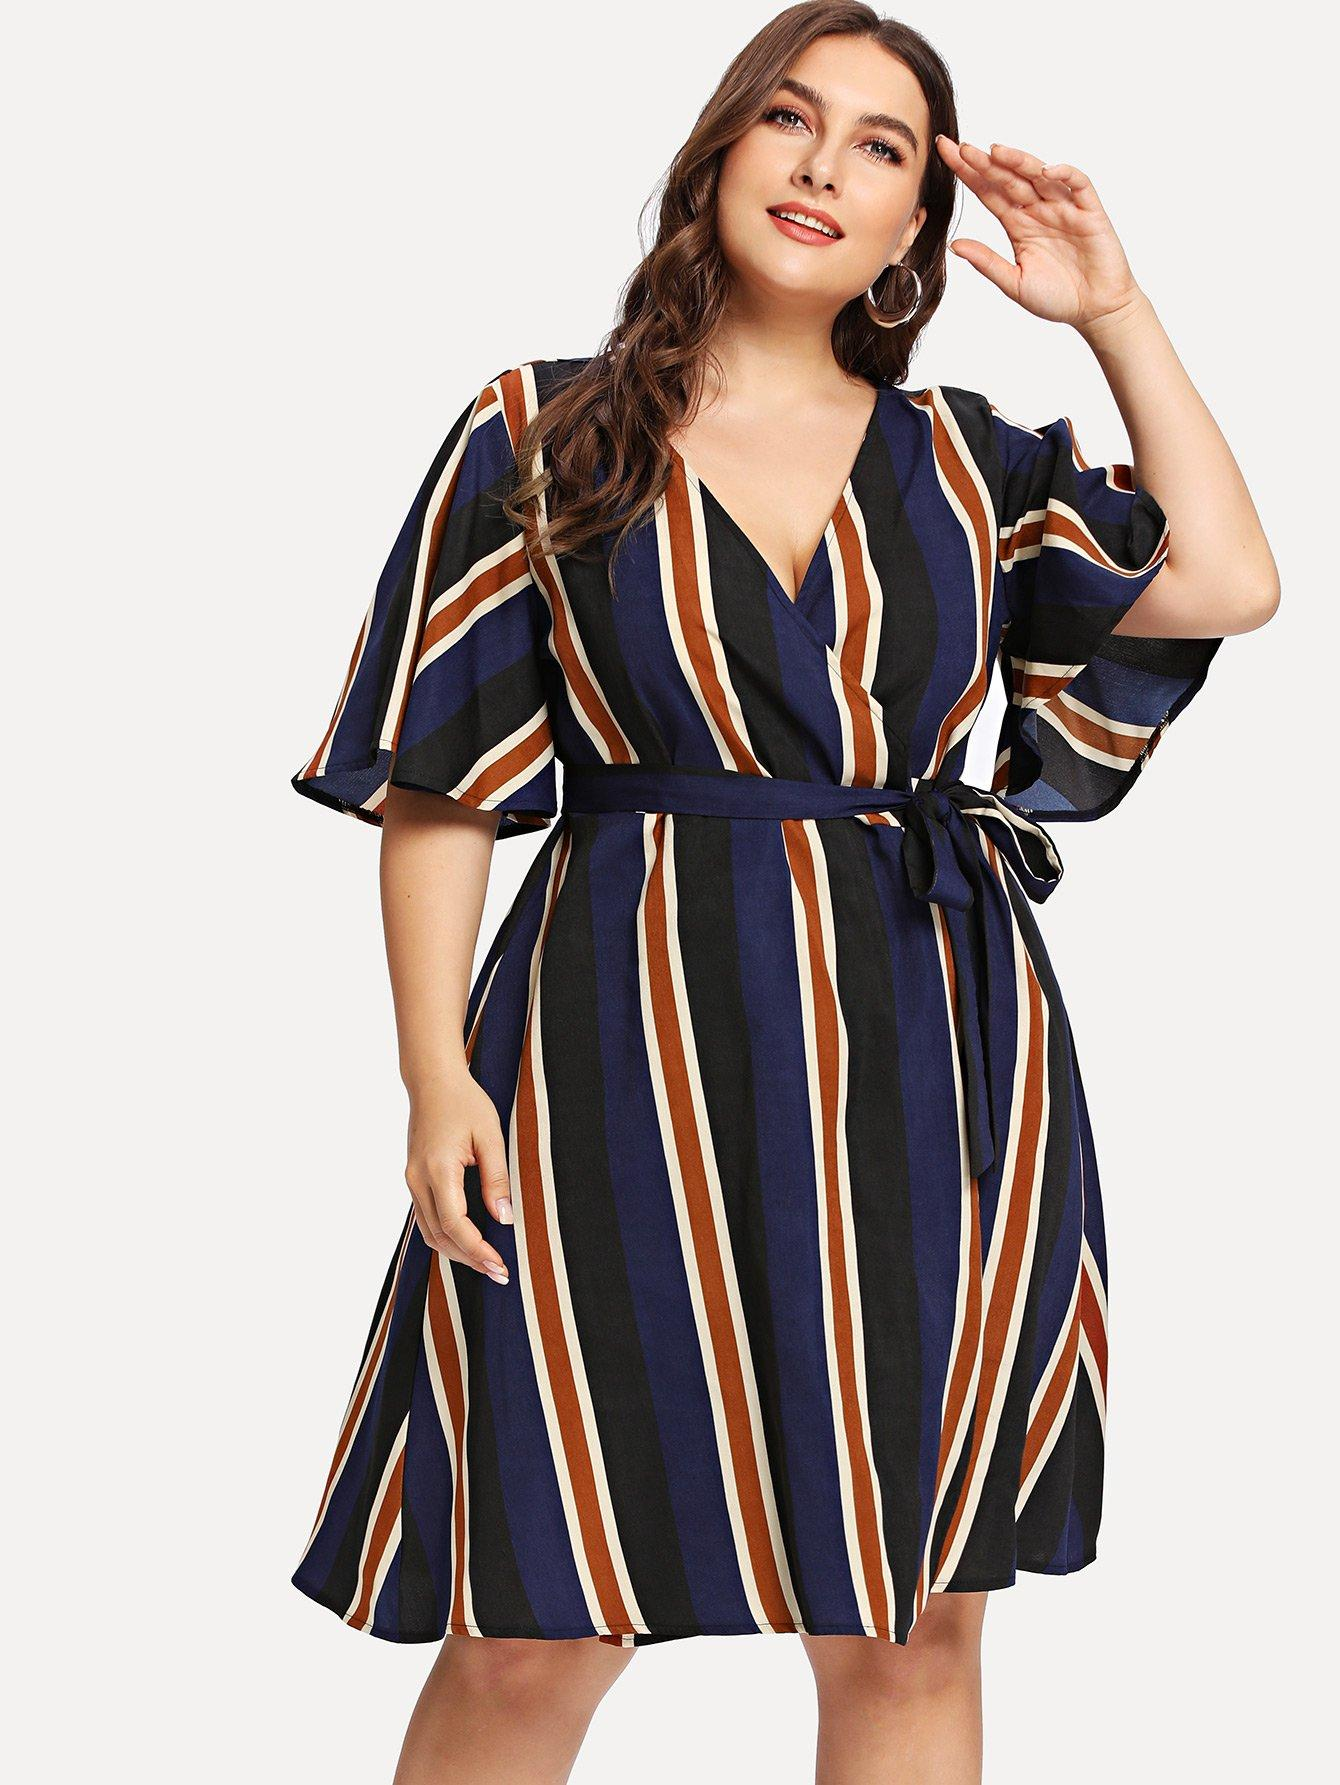 bb3a28d96 Plus Size Dresses for sale - Plus Size Maxi Dress Online Deals ...